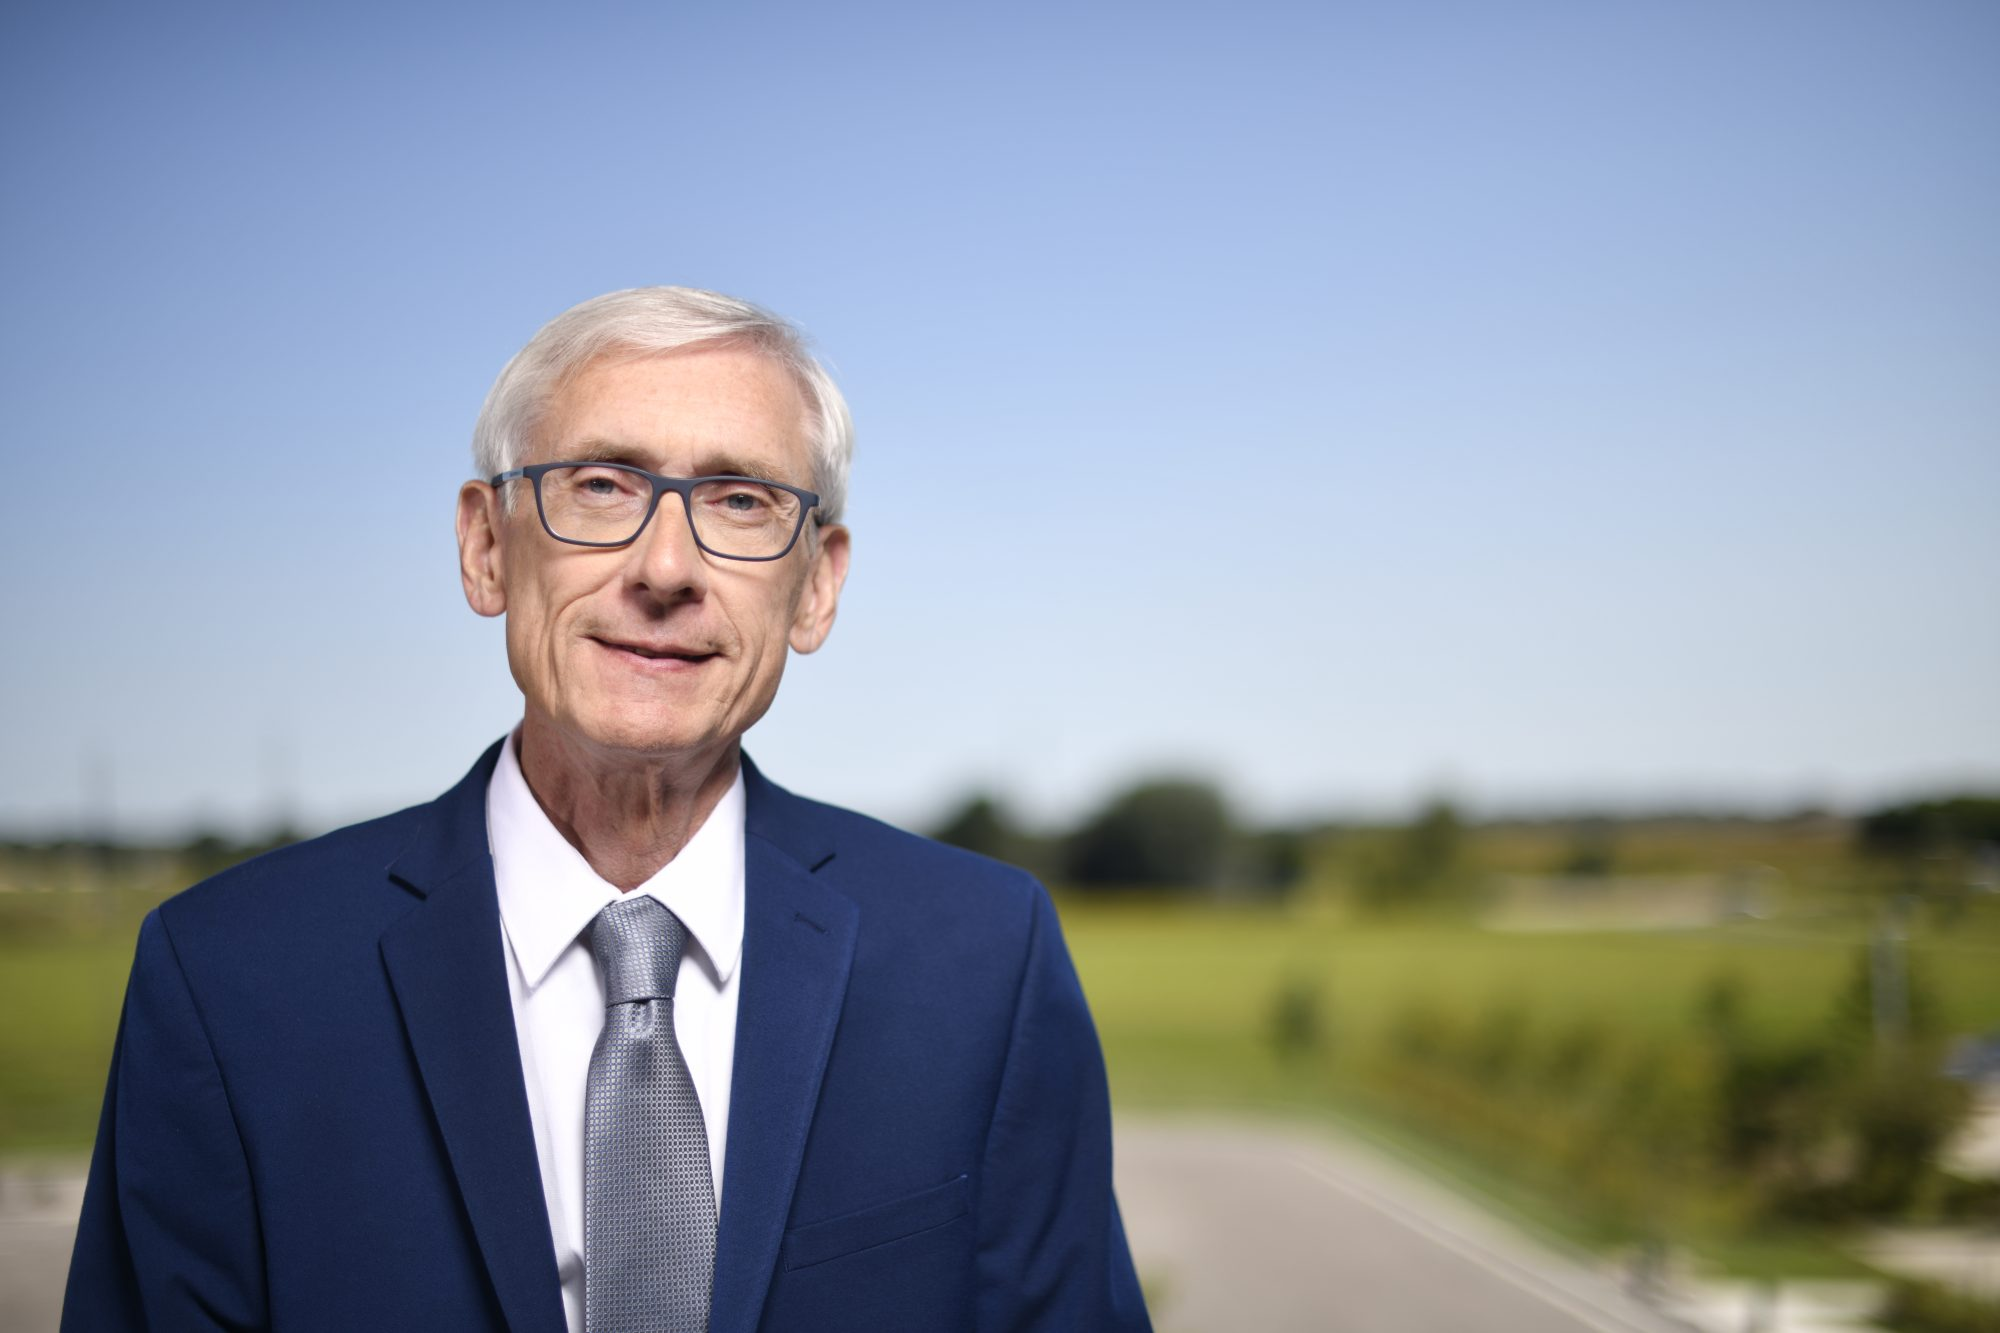 Gov. Evers Signs Bill Expanding COVID-19 Vaccine Administration